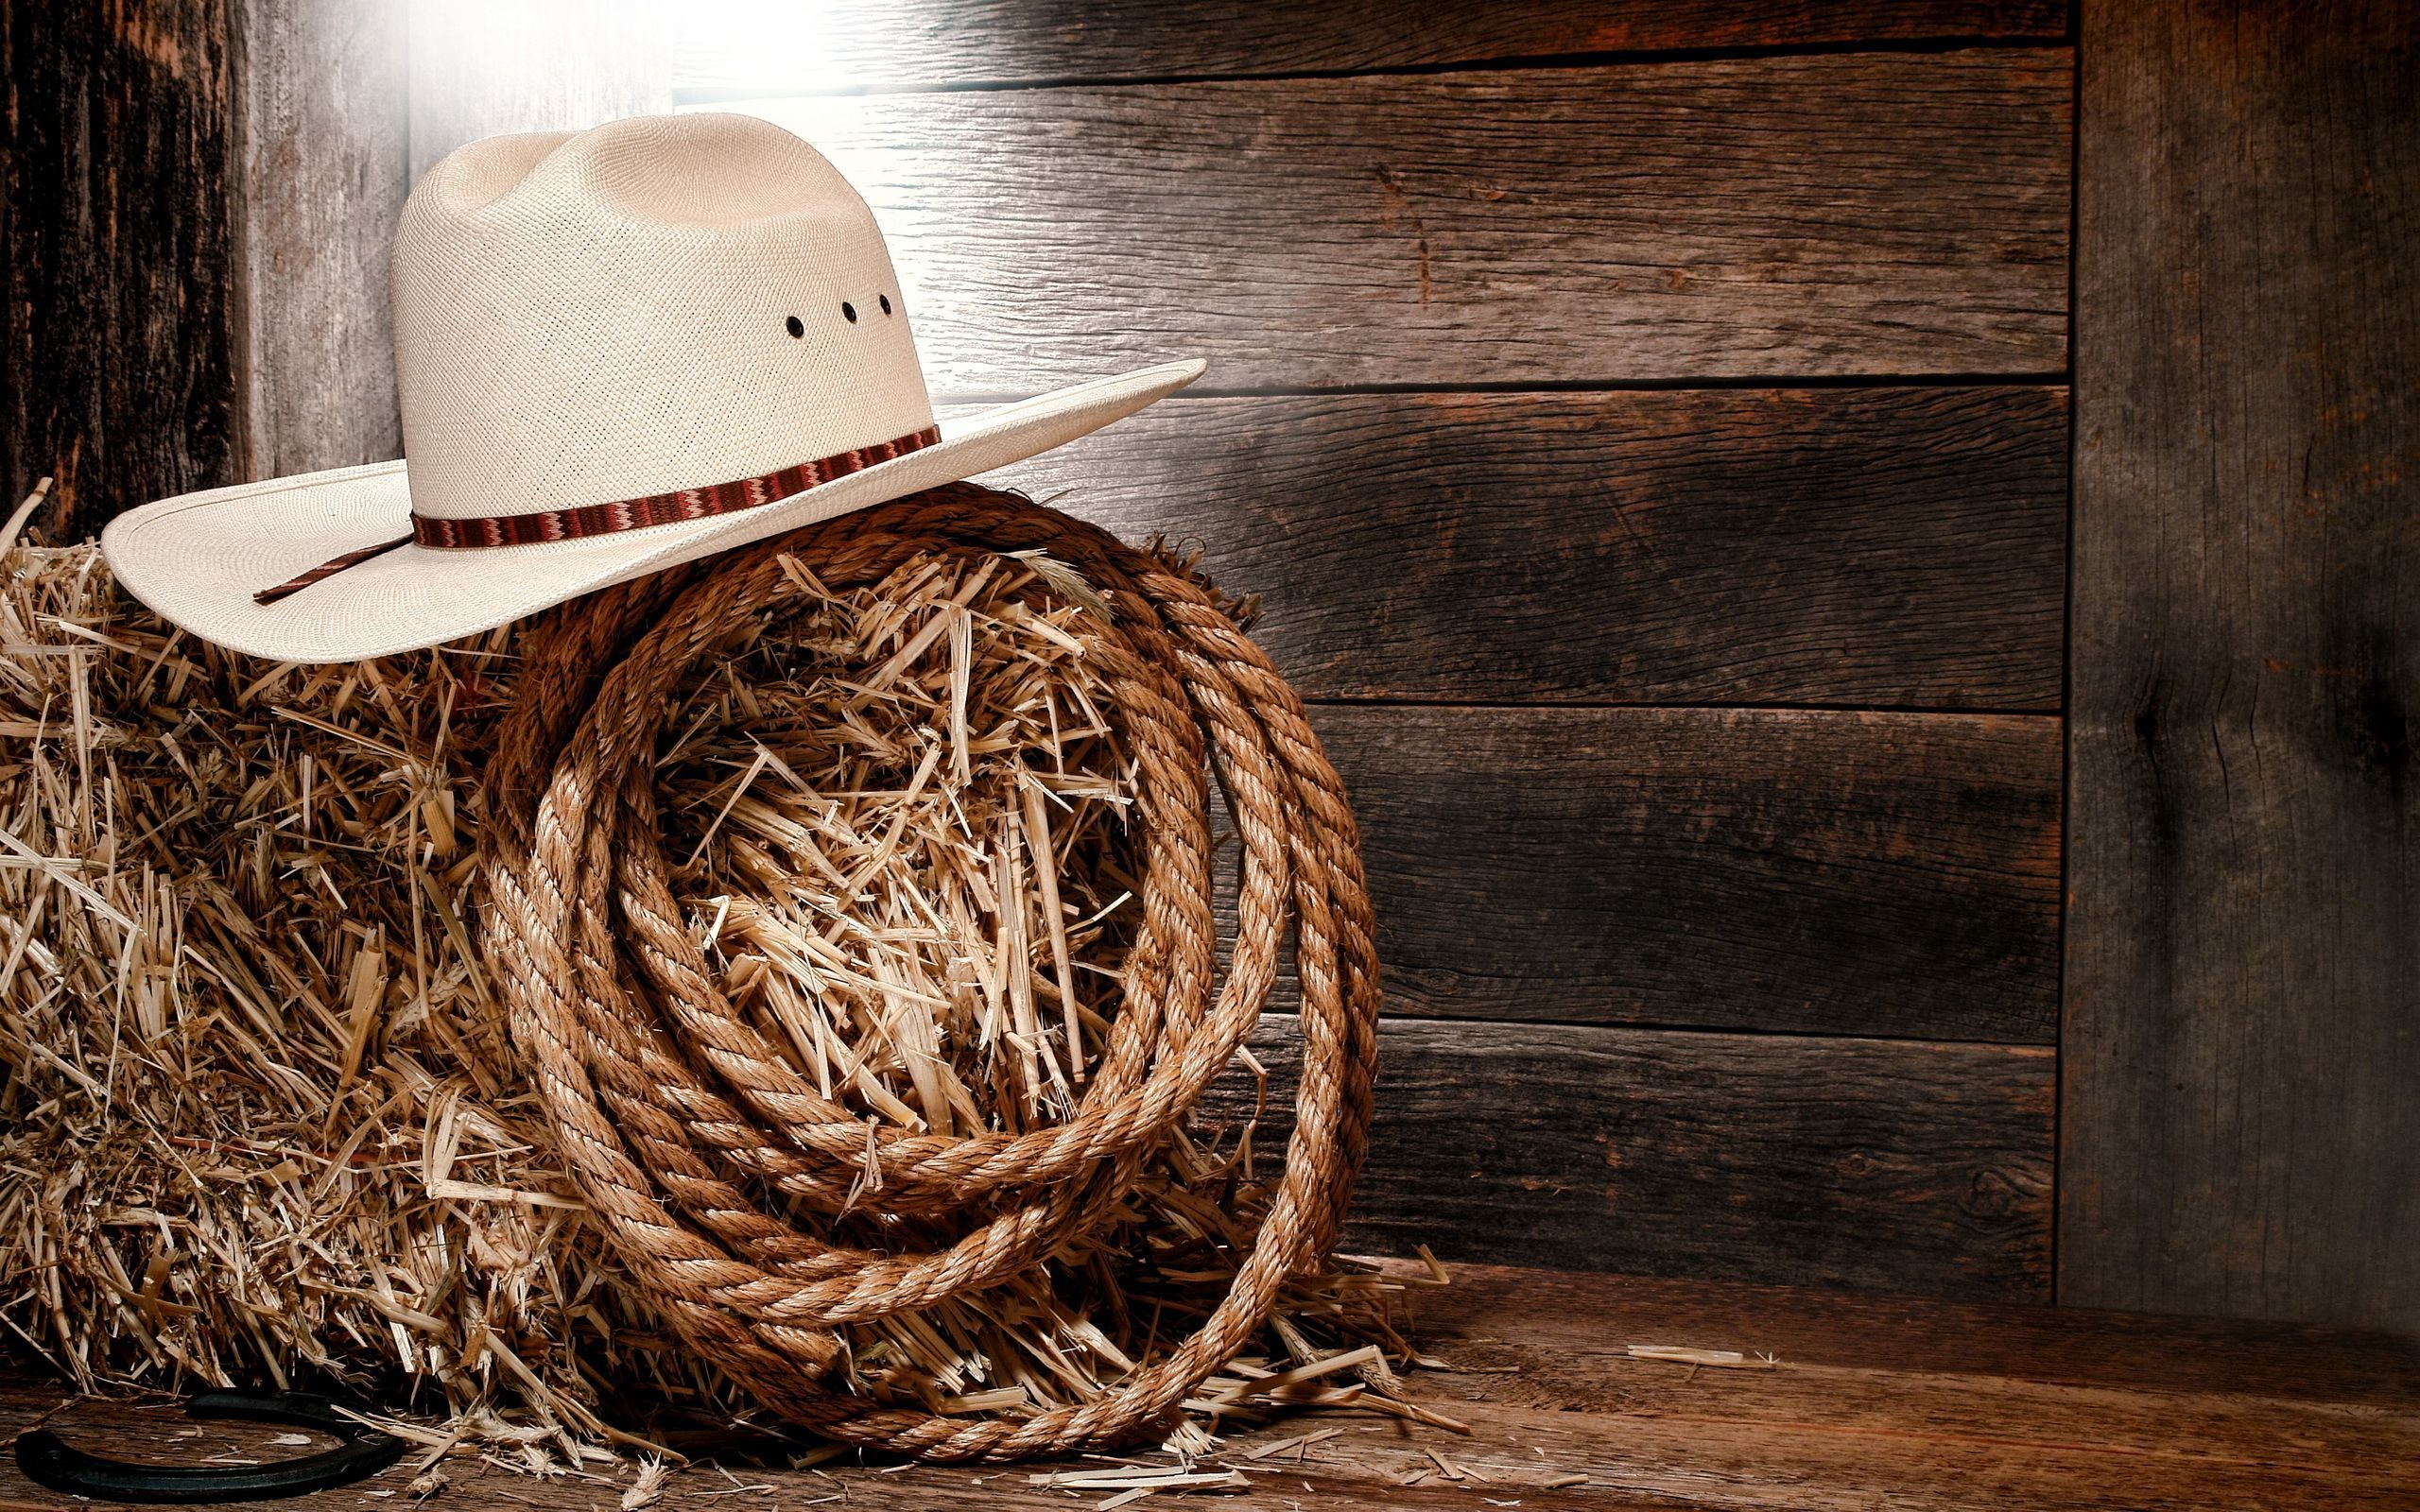 2560x1600 Country Cowboys Boots - wallpaper.